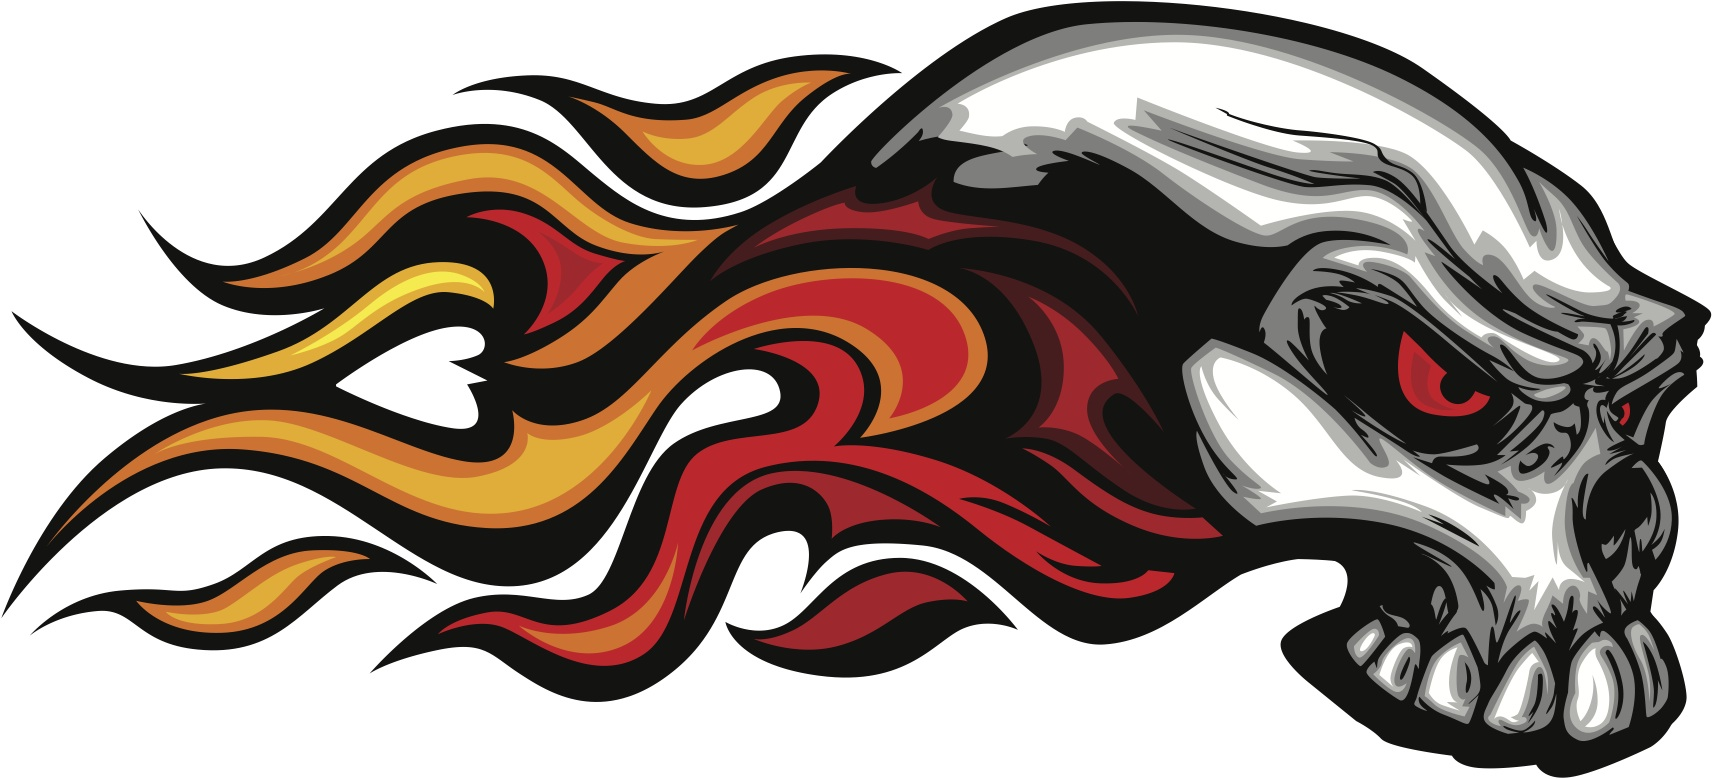 Car sticker design download - Flame Graphic Free Download Clip Art Free Clip Art On